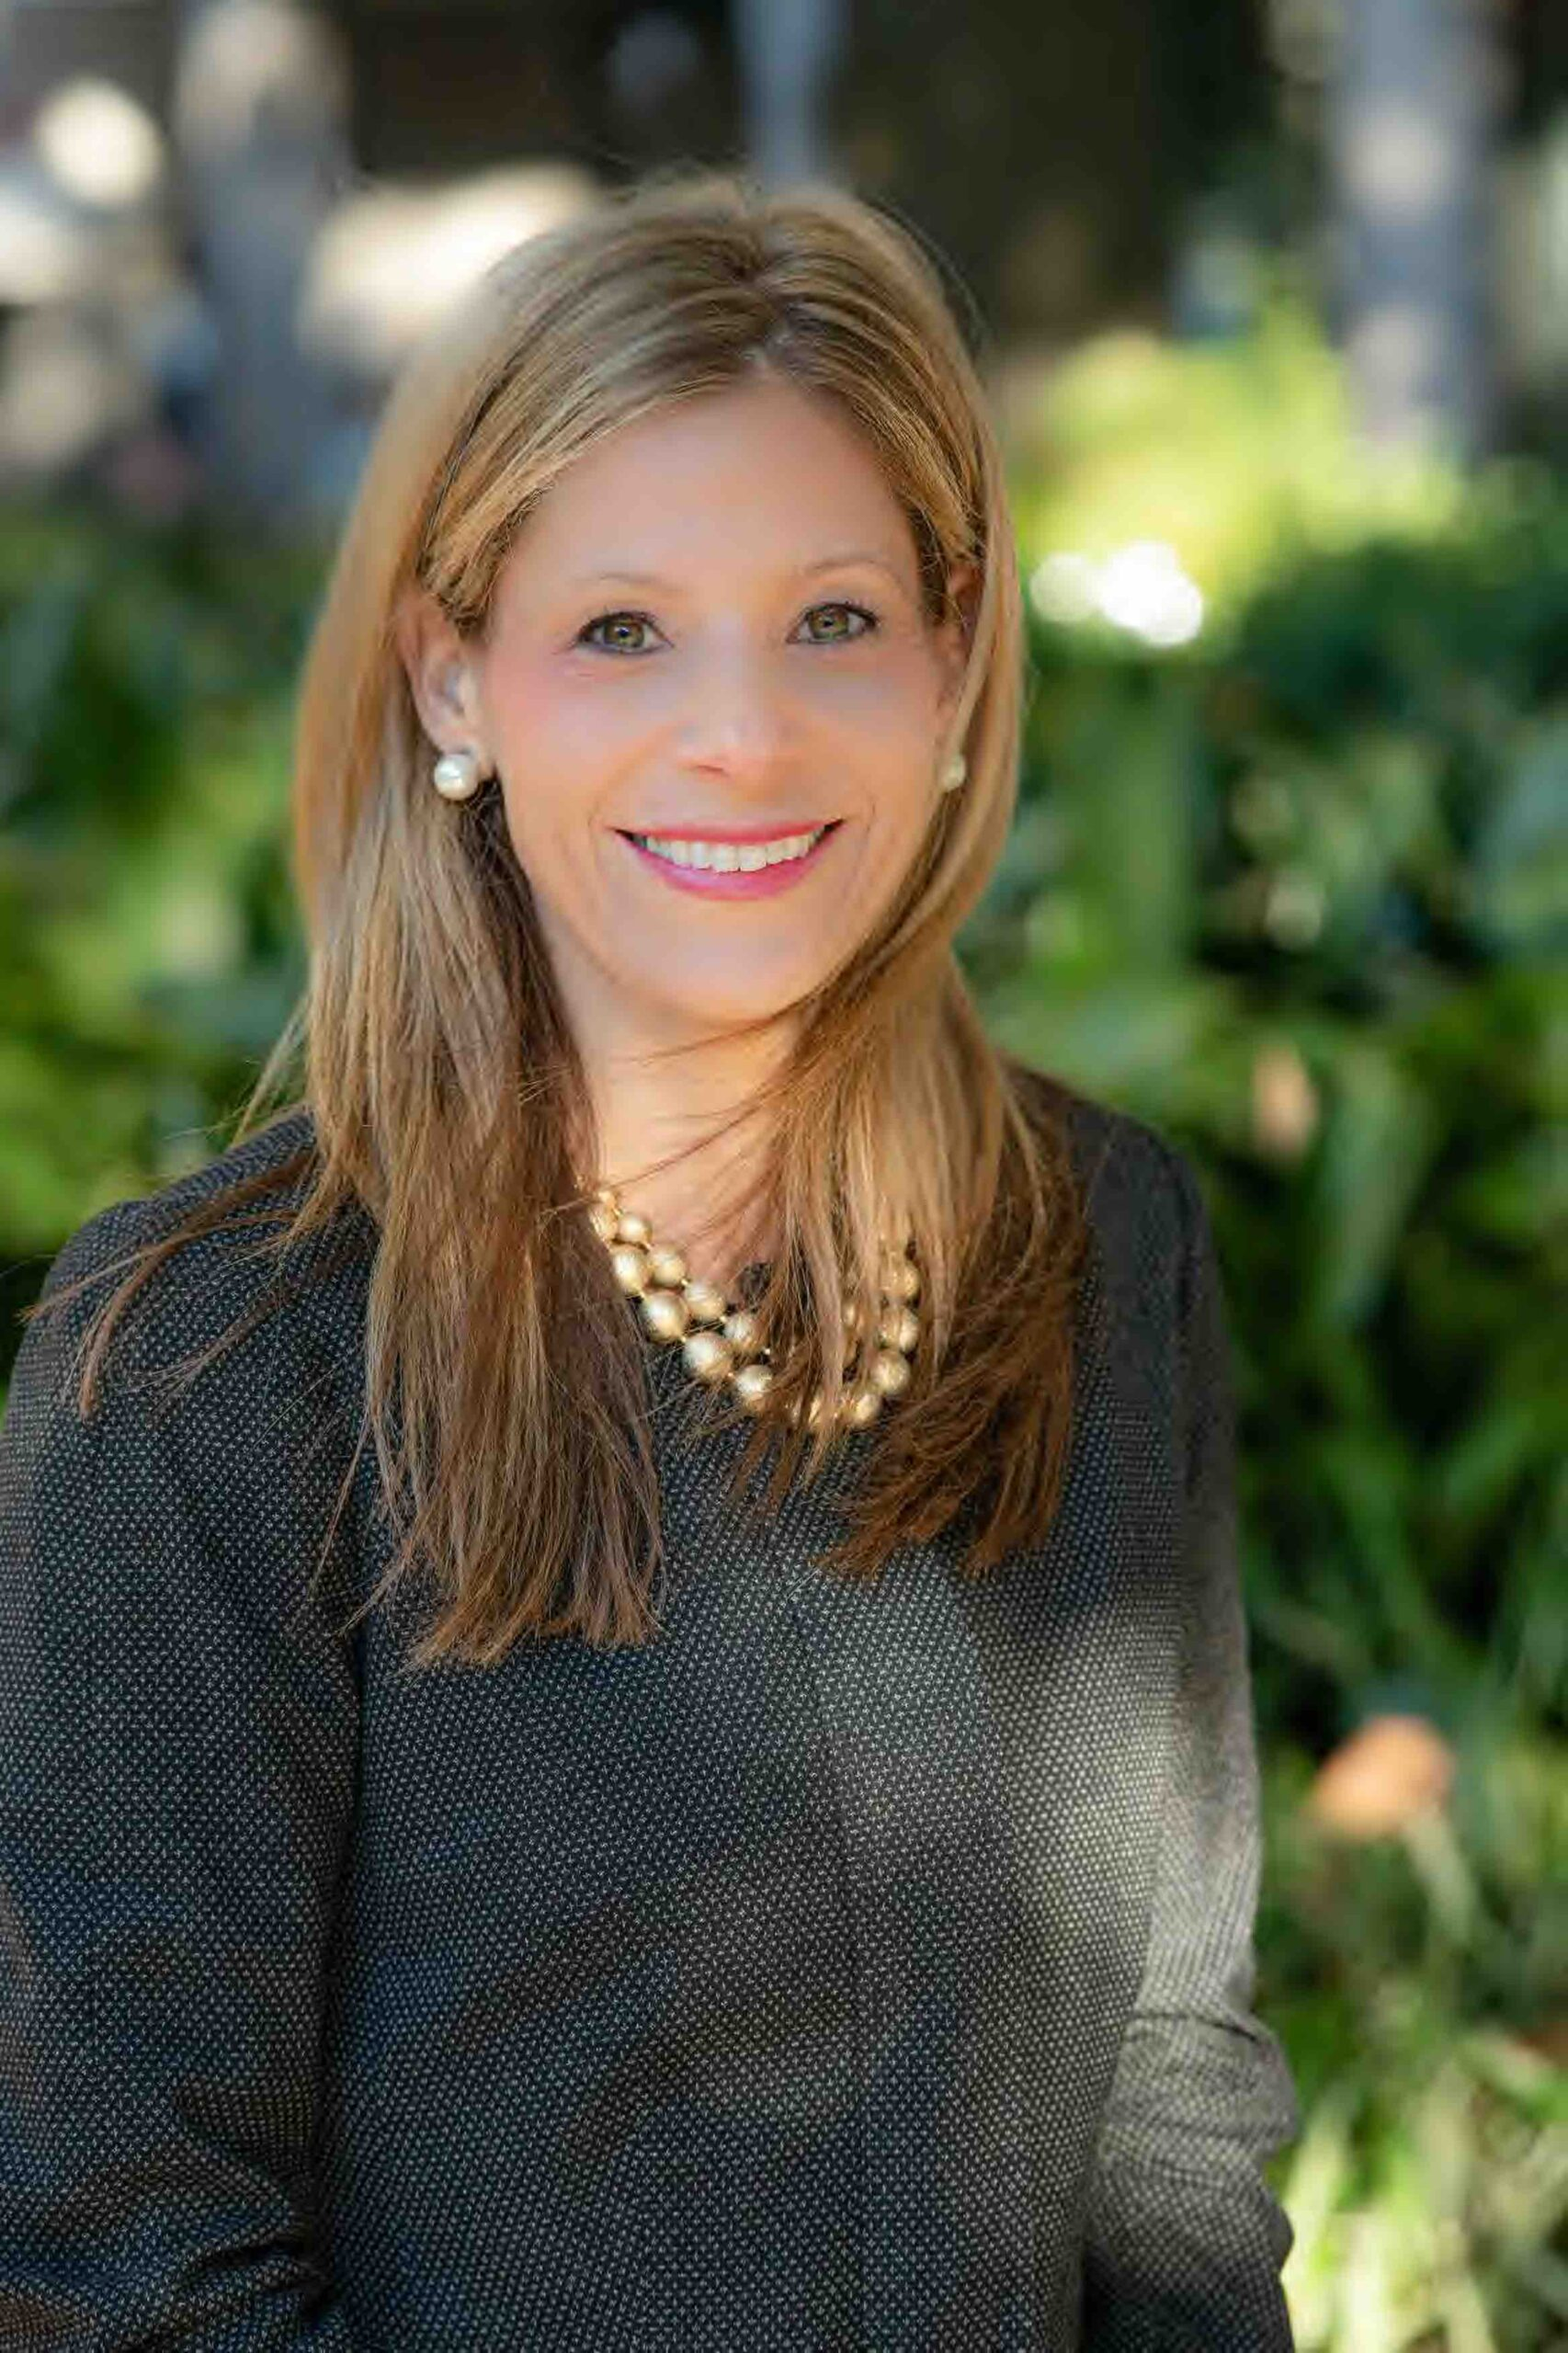 Jo Anne Keck - Dumaine Investments LLC - Wealth Management, Financial Planning, Investment Advice, New Orleans